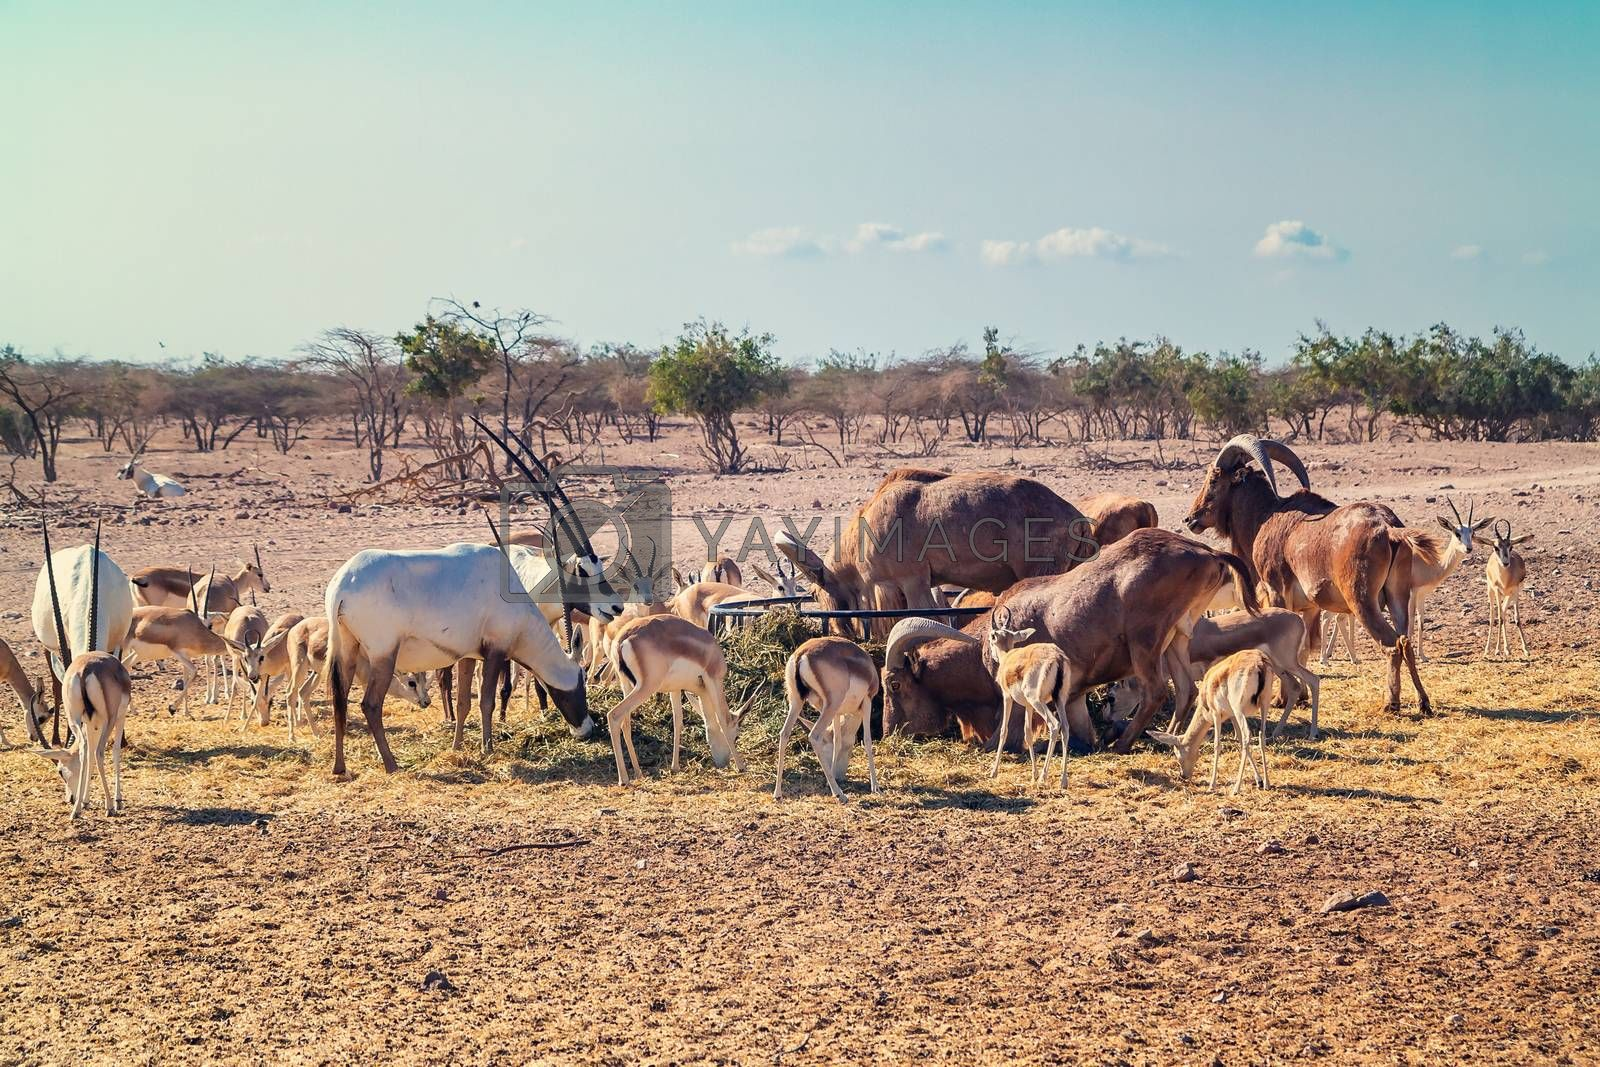 Group of antelopes and mountain sheep in a safari park on the island of Sir Bani Yas, United Arab Emirates by galsand